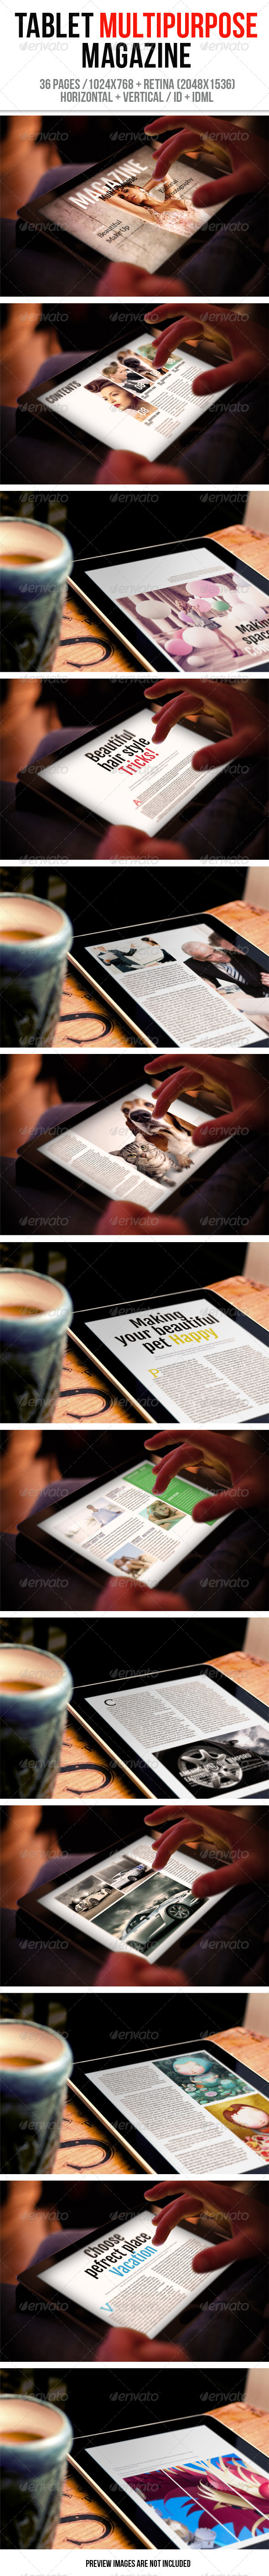 GraphicRiver Tablet Multipurpose Magazine 6260237